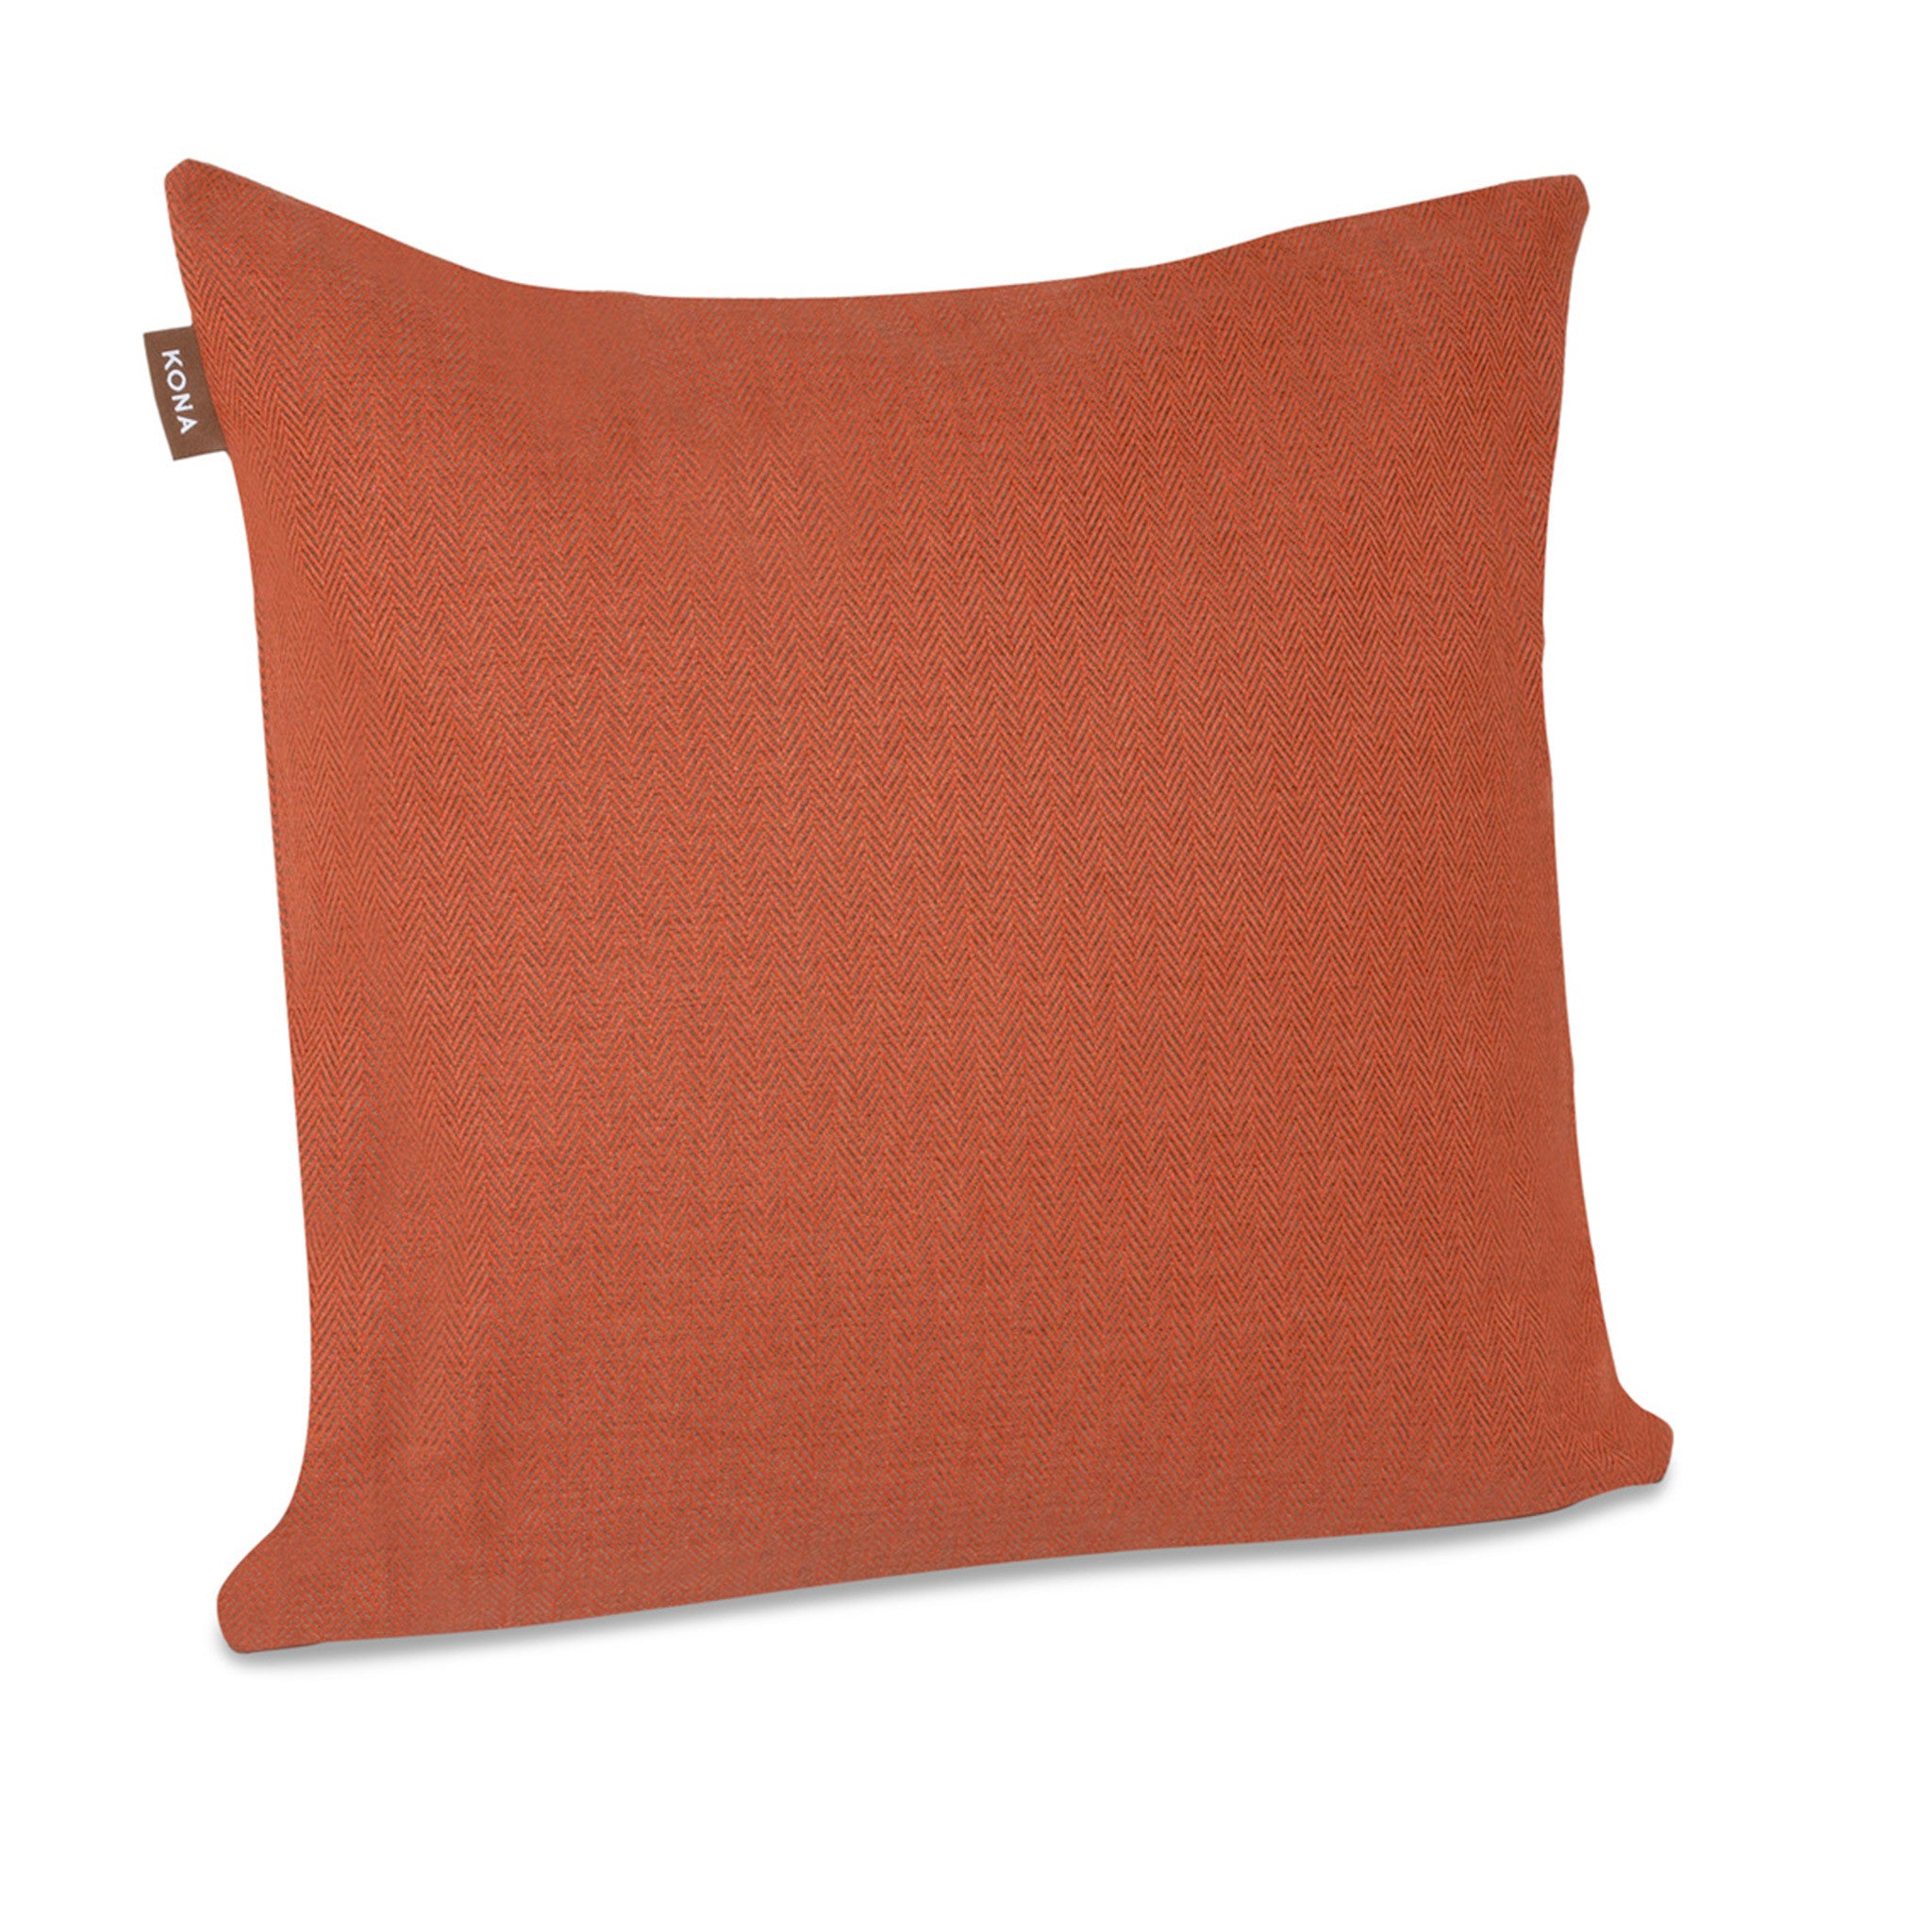 bed covers red orange throw awesome pillow solid and yellow decorative cushions pillows of